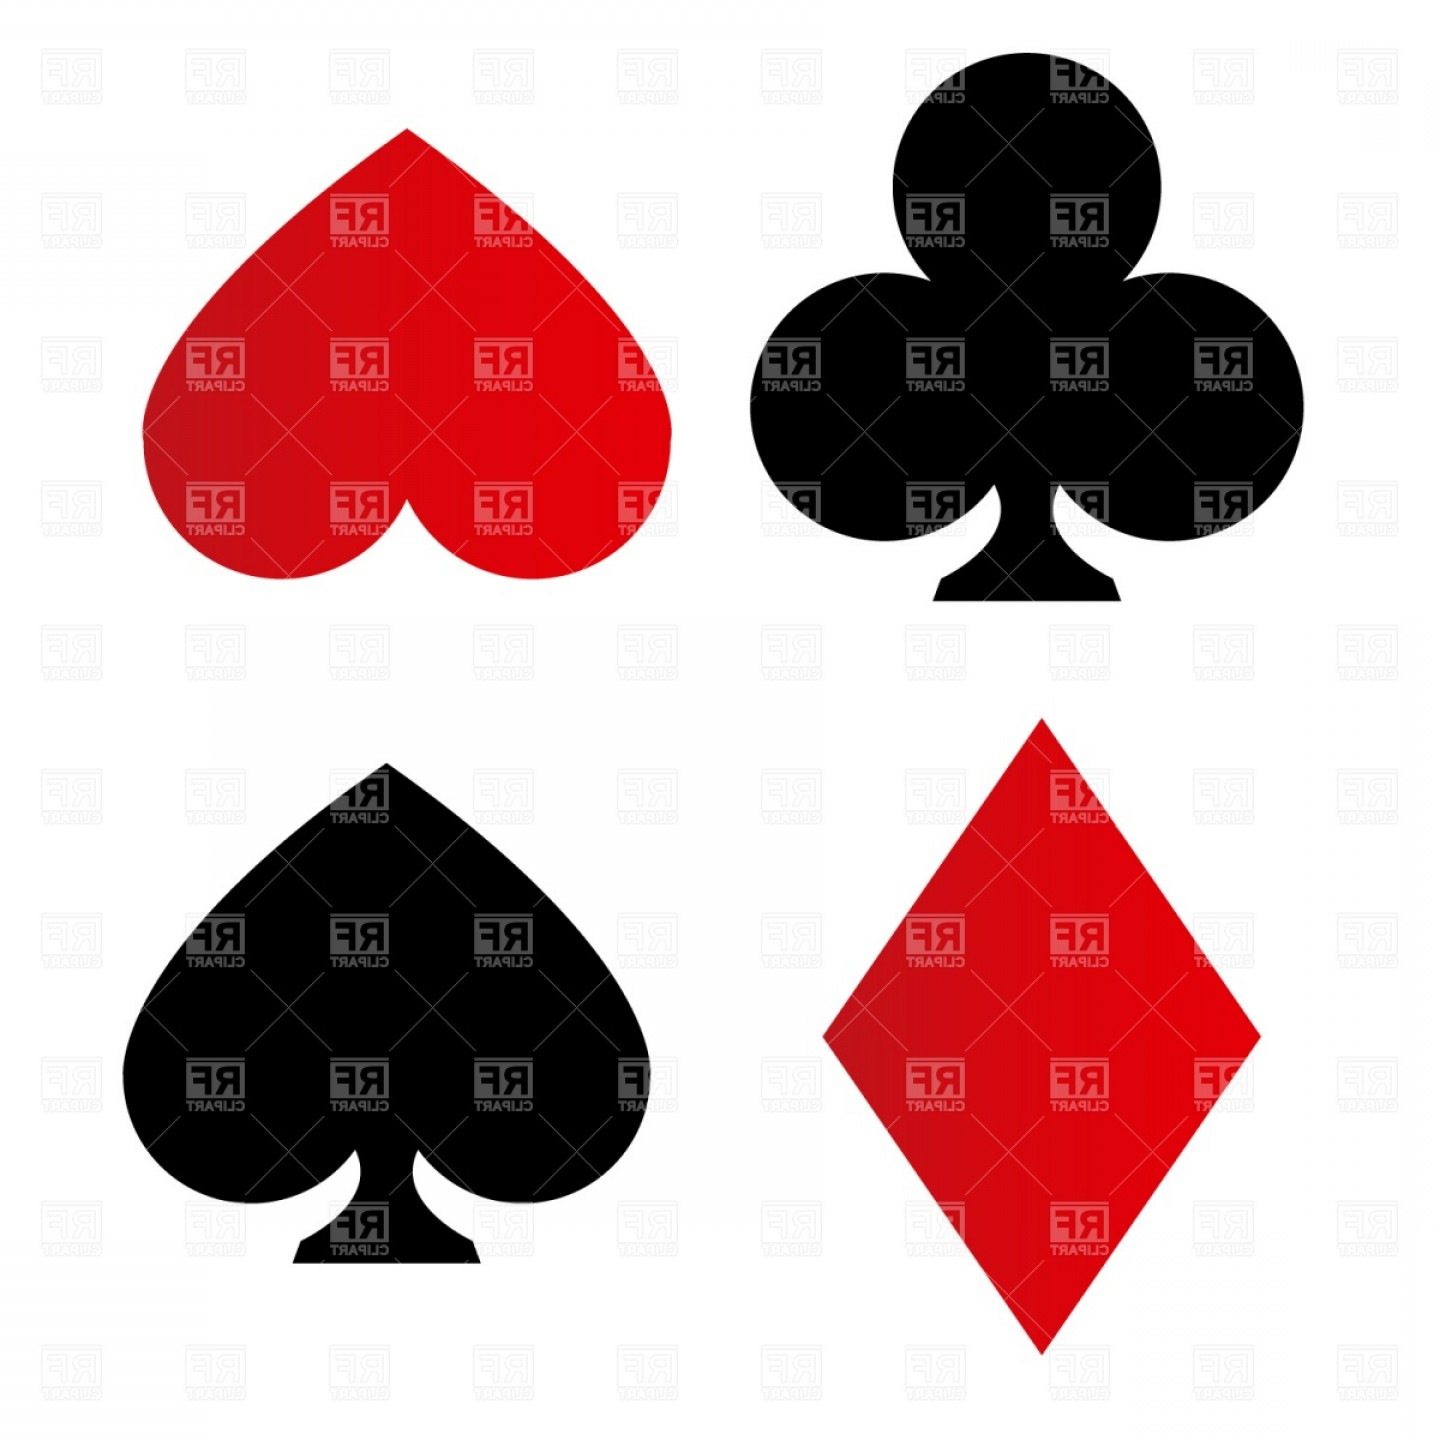 Card Suits Vector Outlines: Playing Card Suit Symbols Vector Clipart